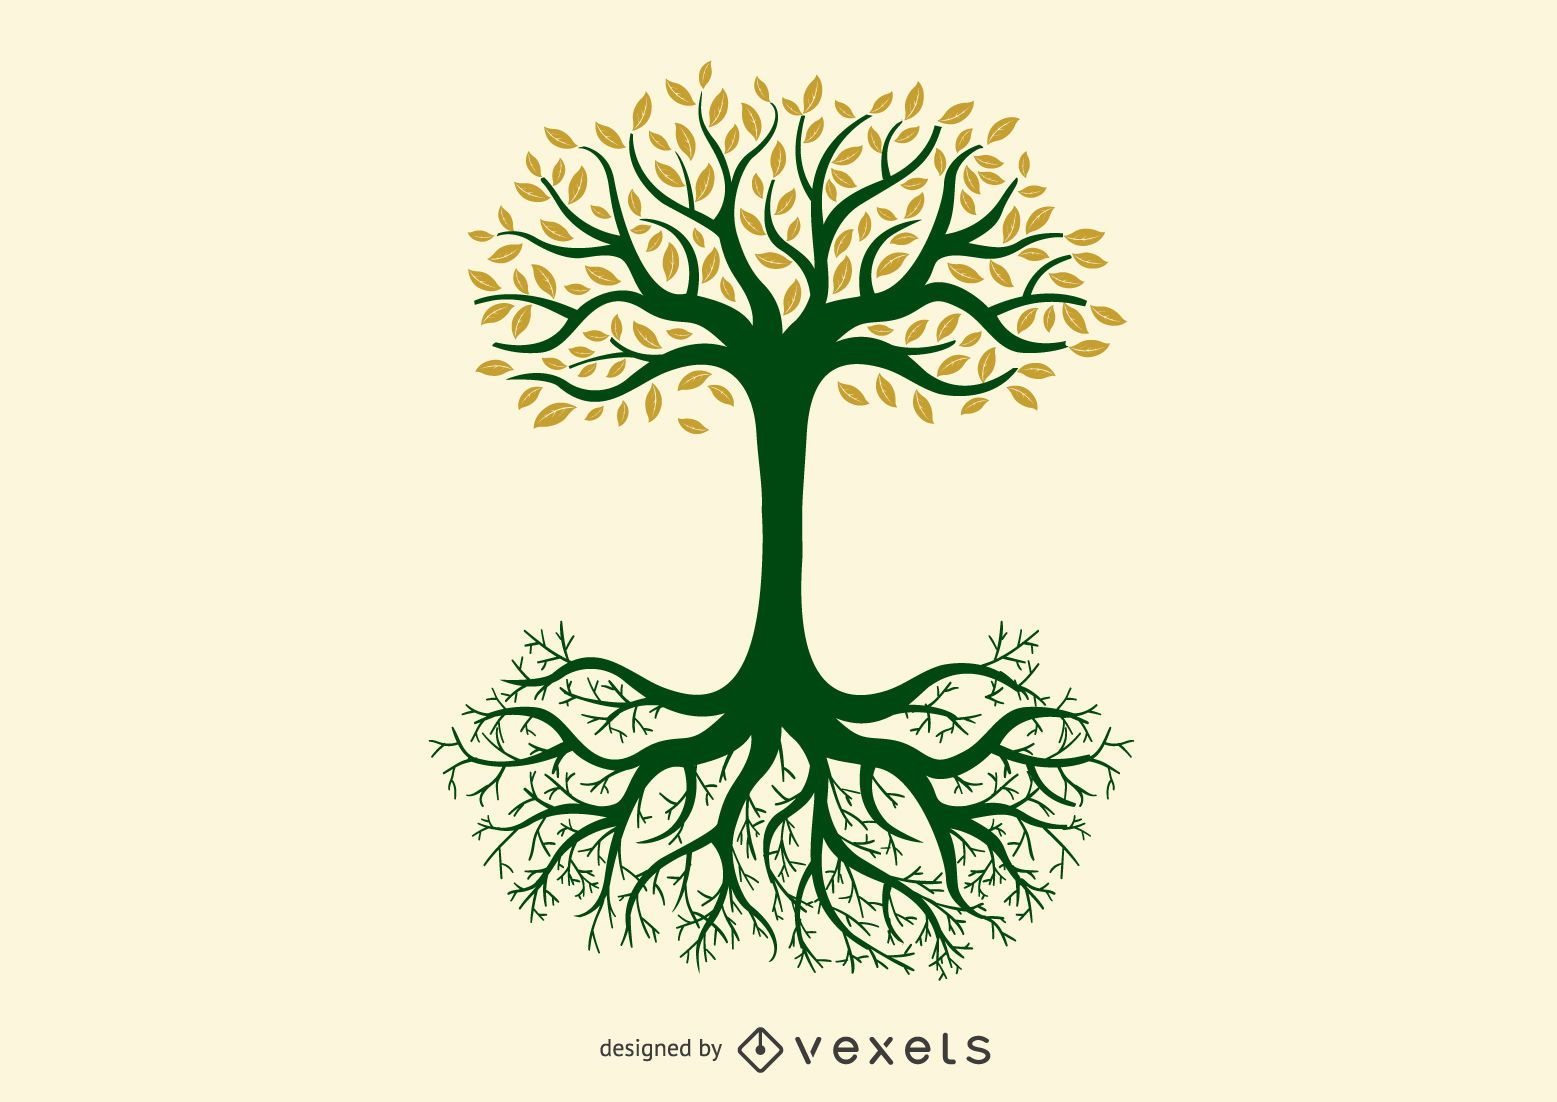 Tree of Life Yggdrasil Norse Graphic Design